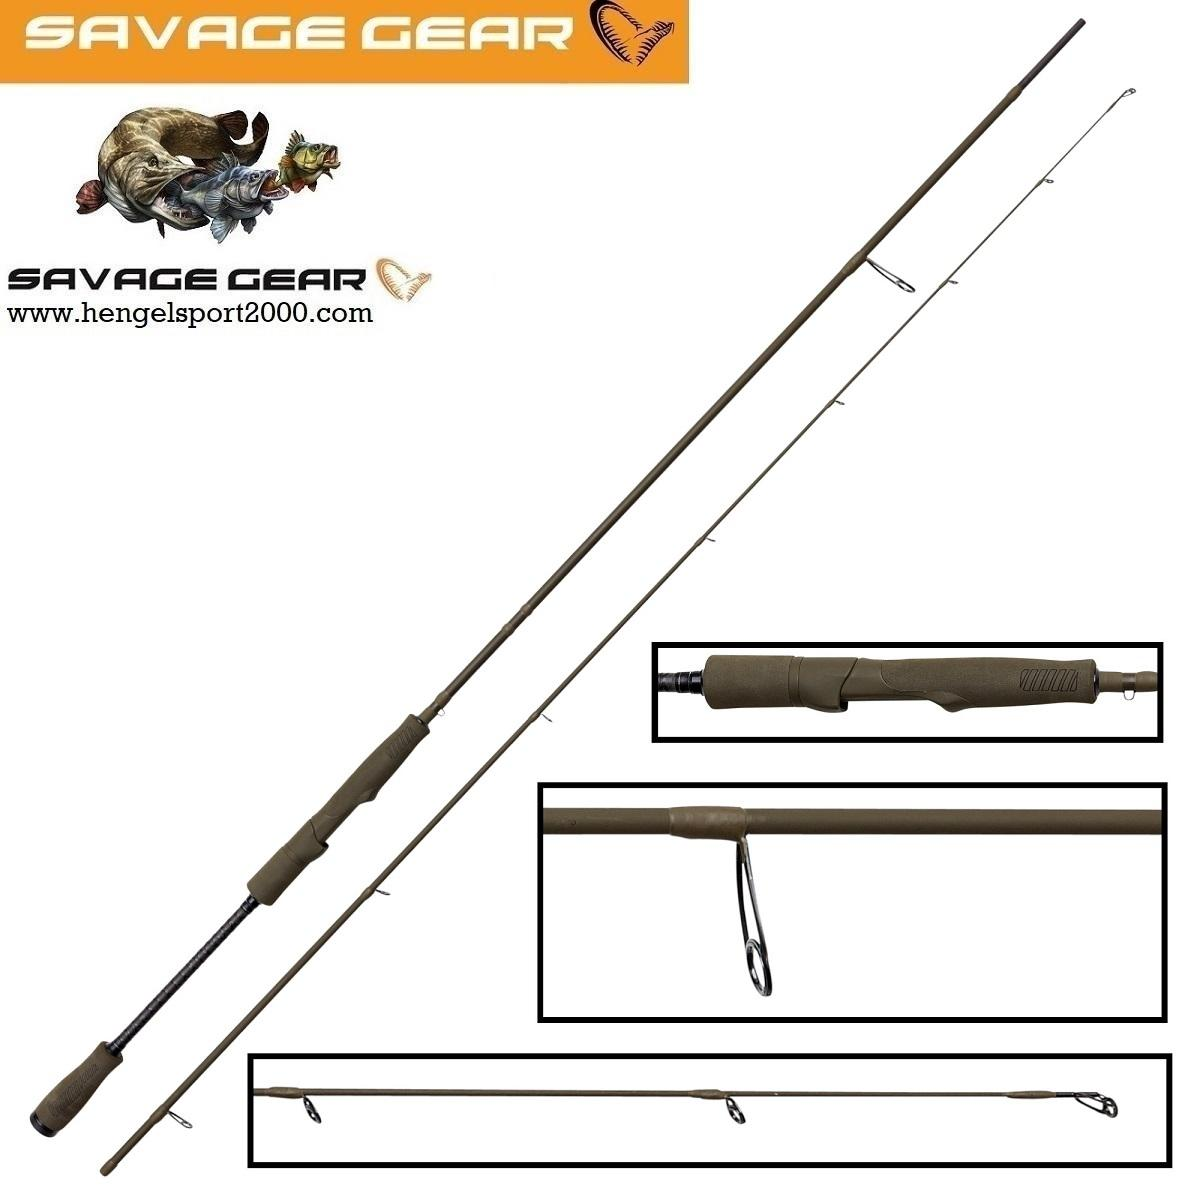 Savage Gear SG4 Light Game Rod 251 cm 5 - 18 gram